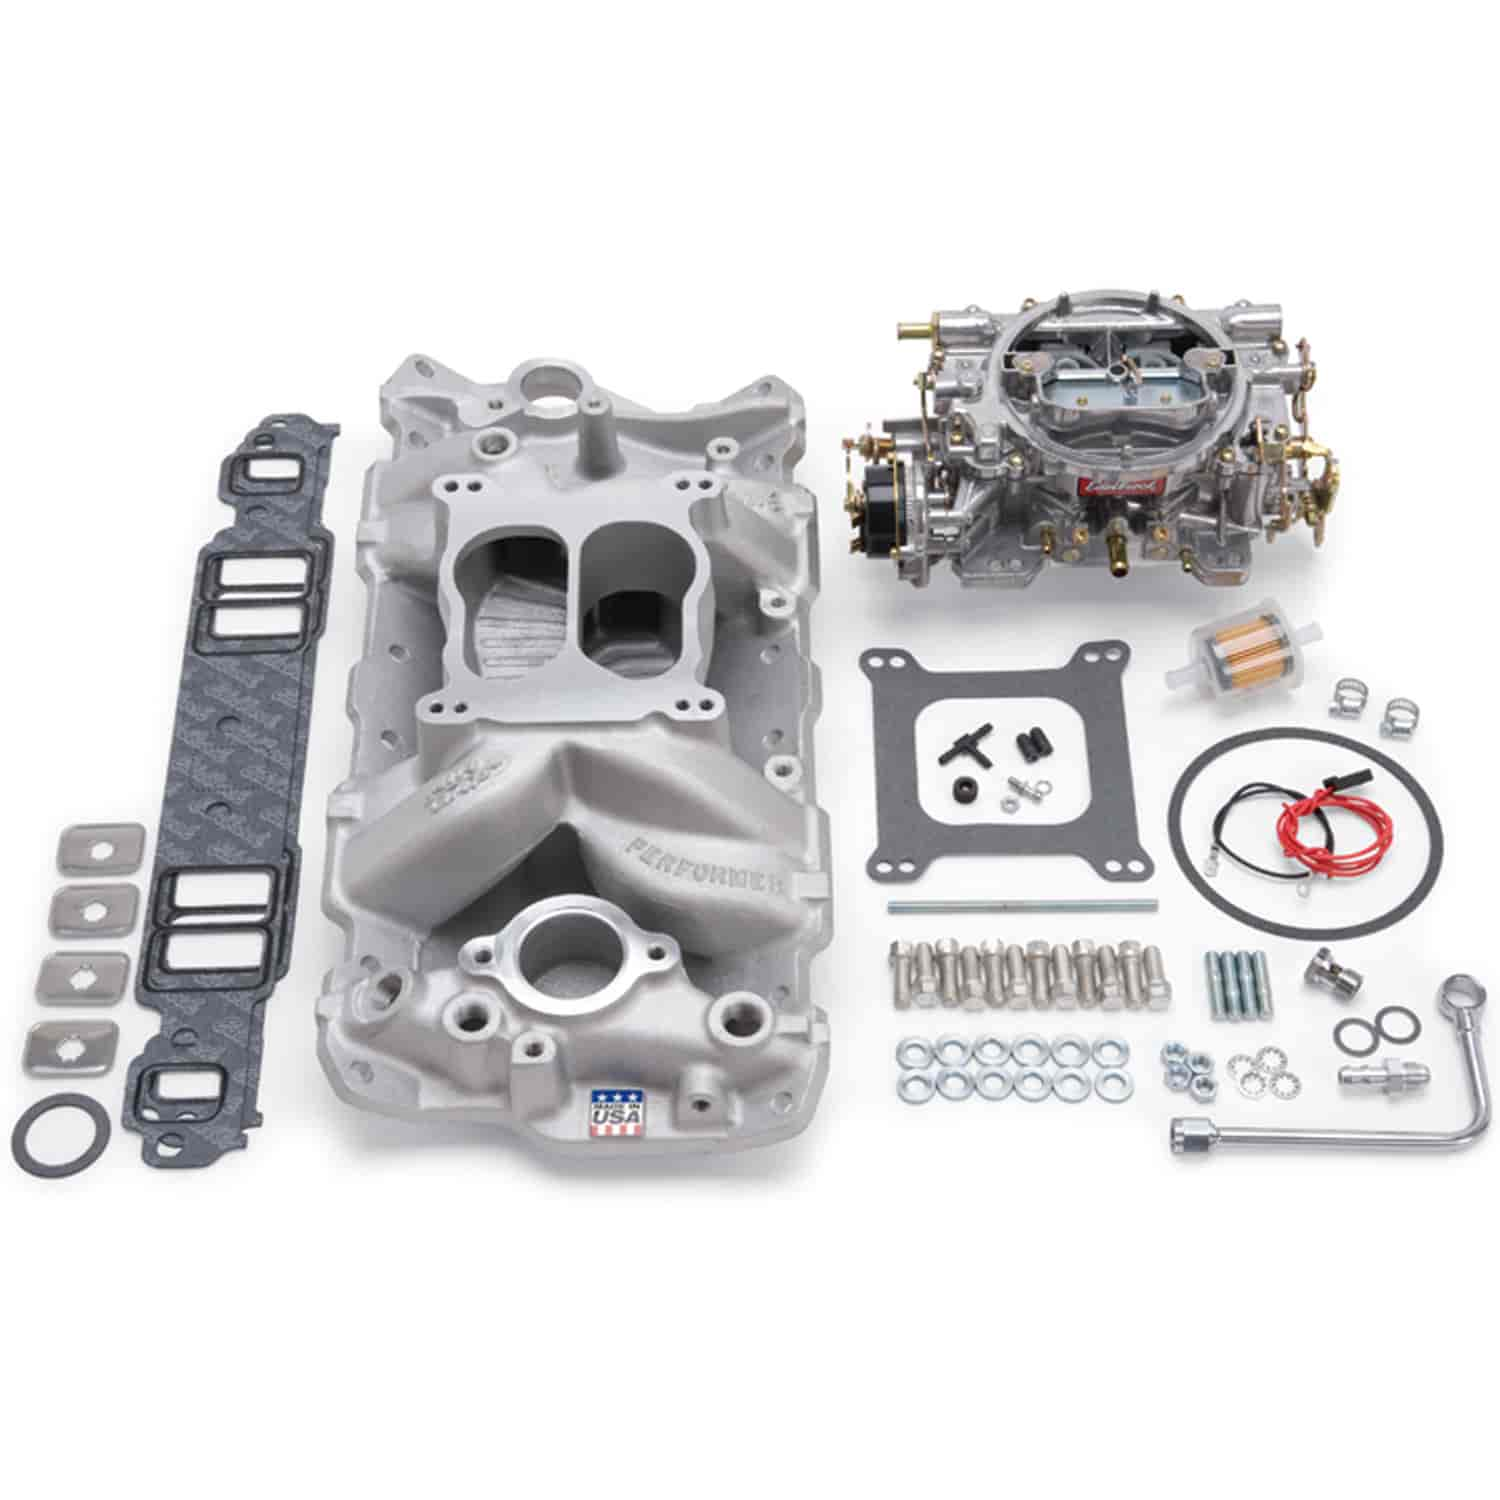 Edelbrock 2020 Single-Quad Manifold And Carb Kit Small